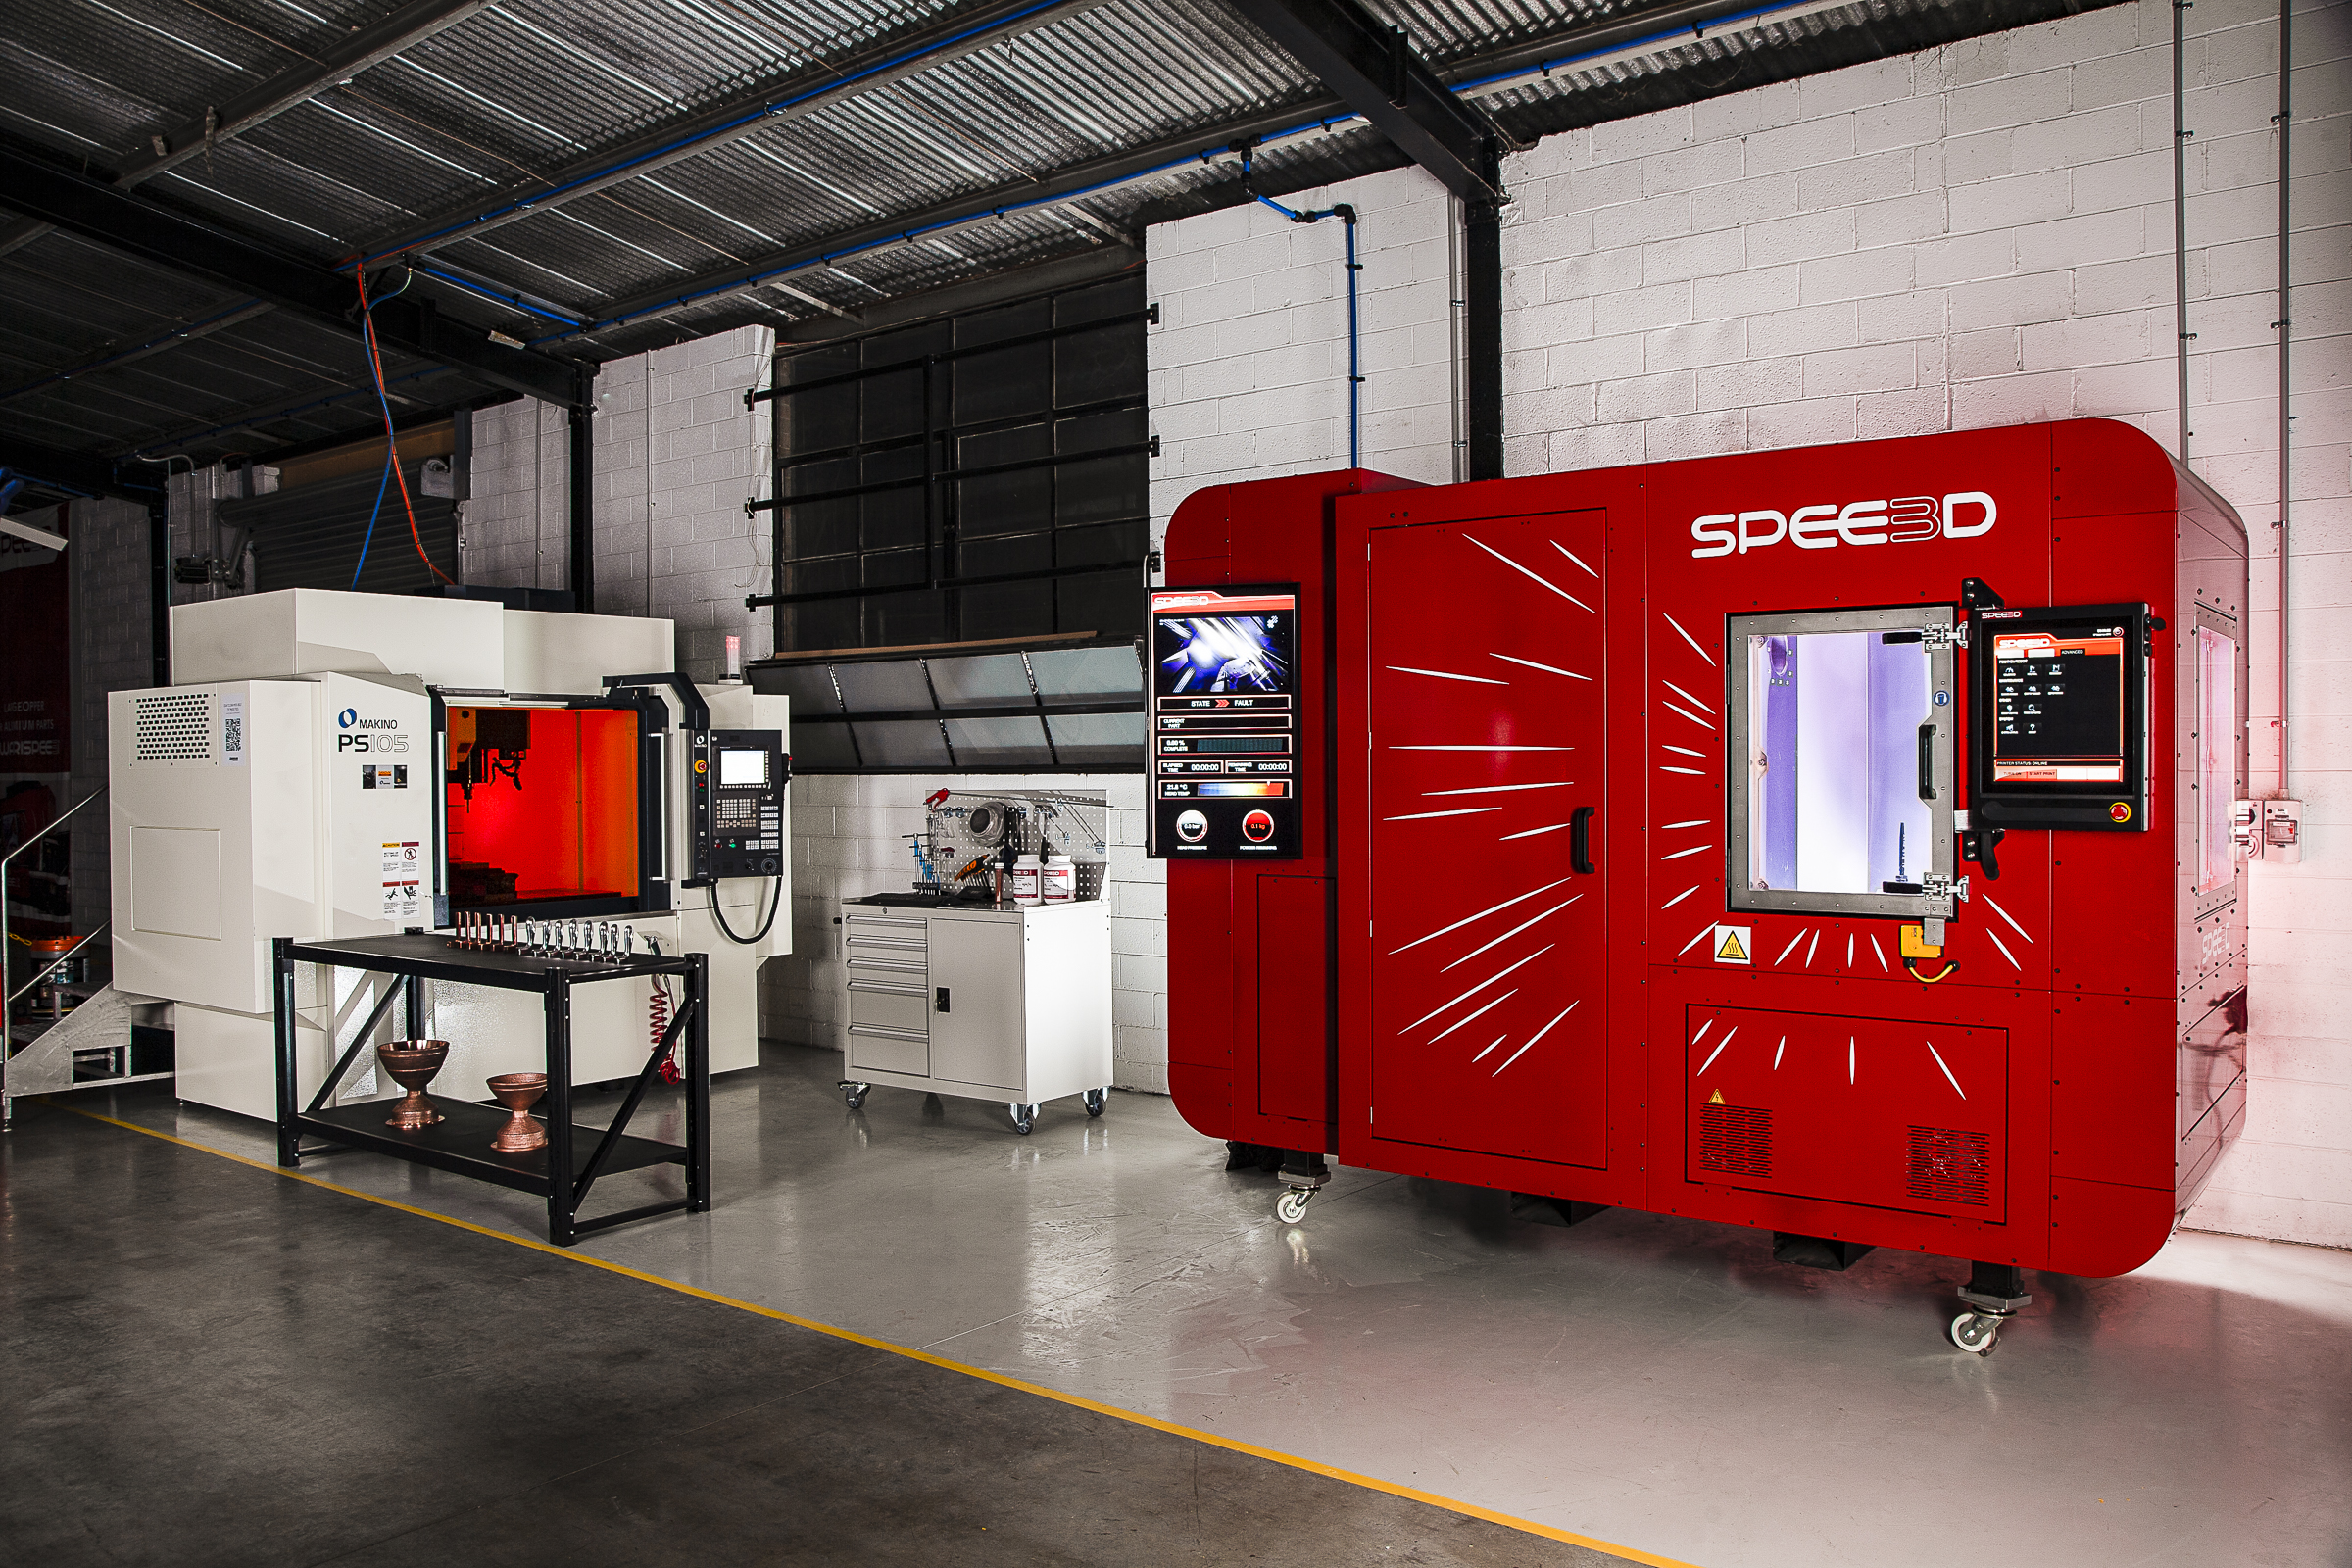 SPEE3D – Fast Affordable Metal Parts